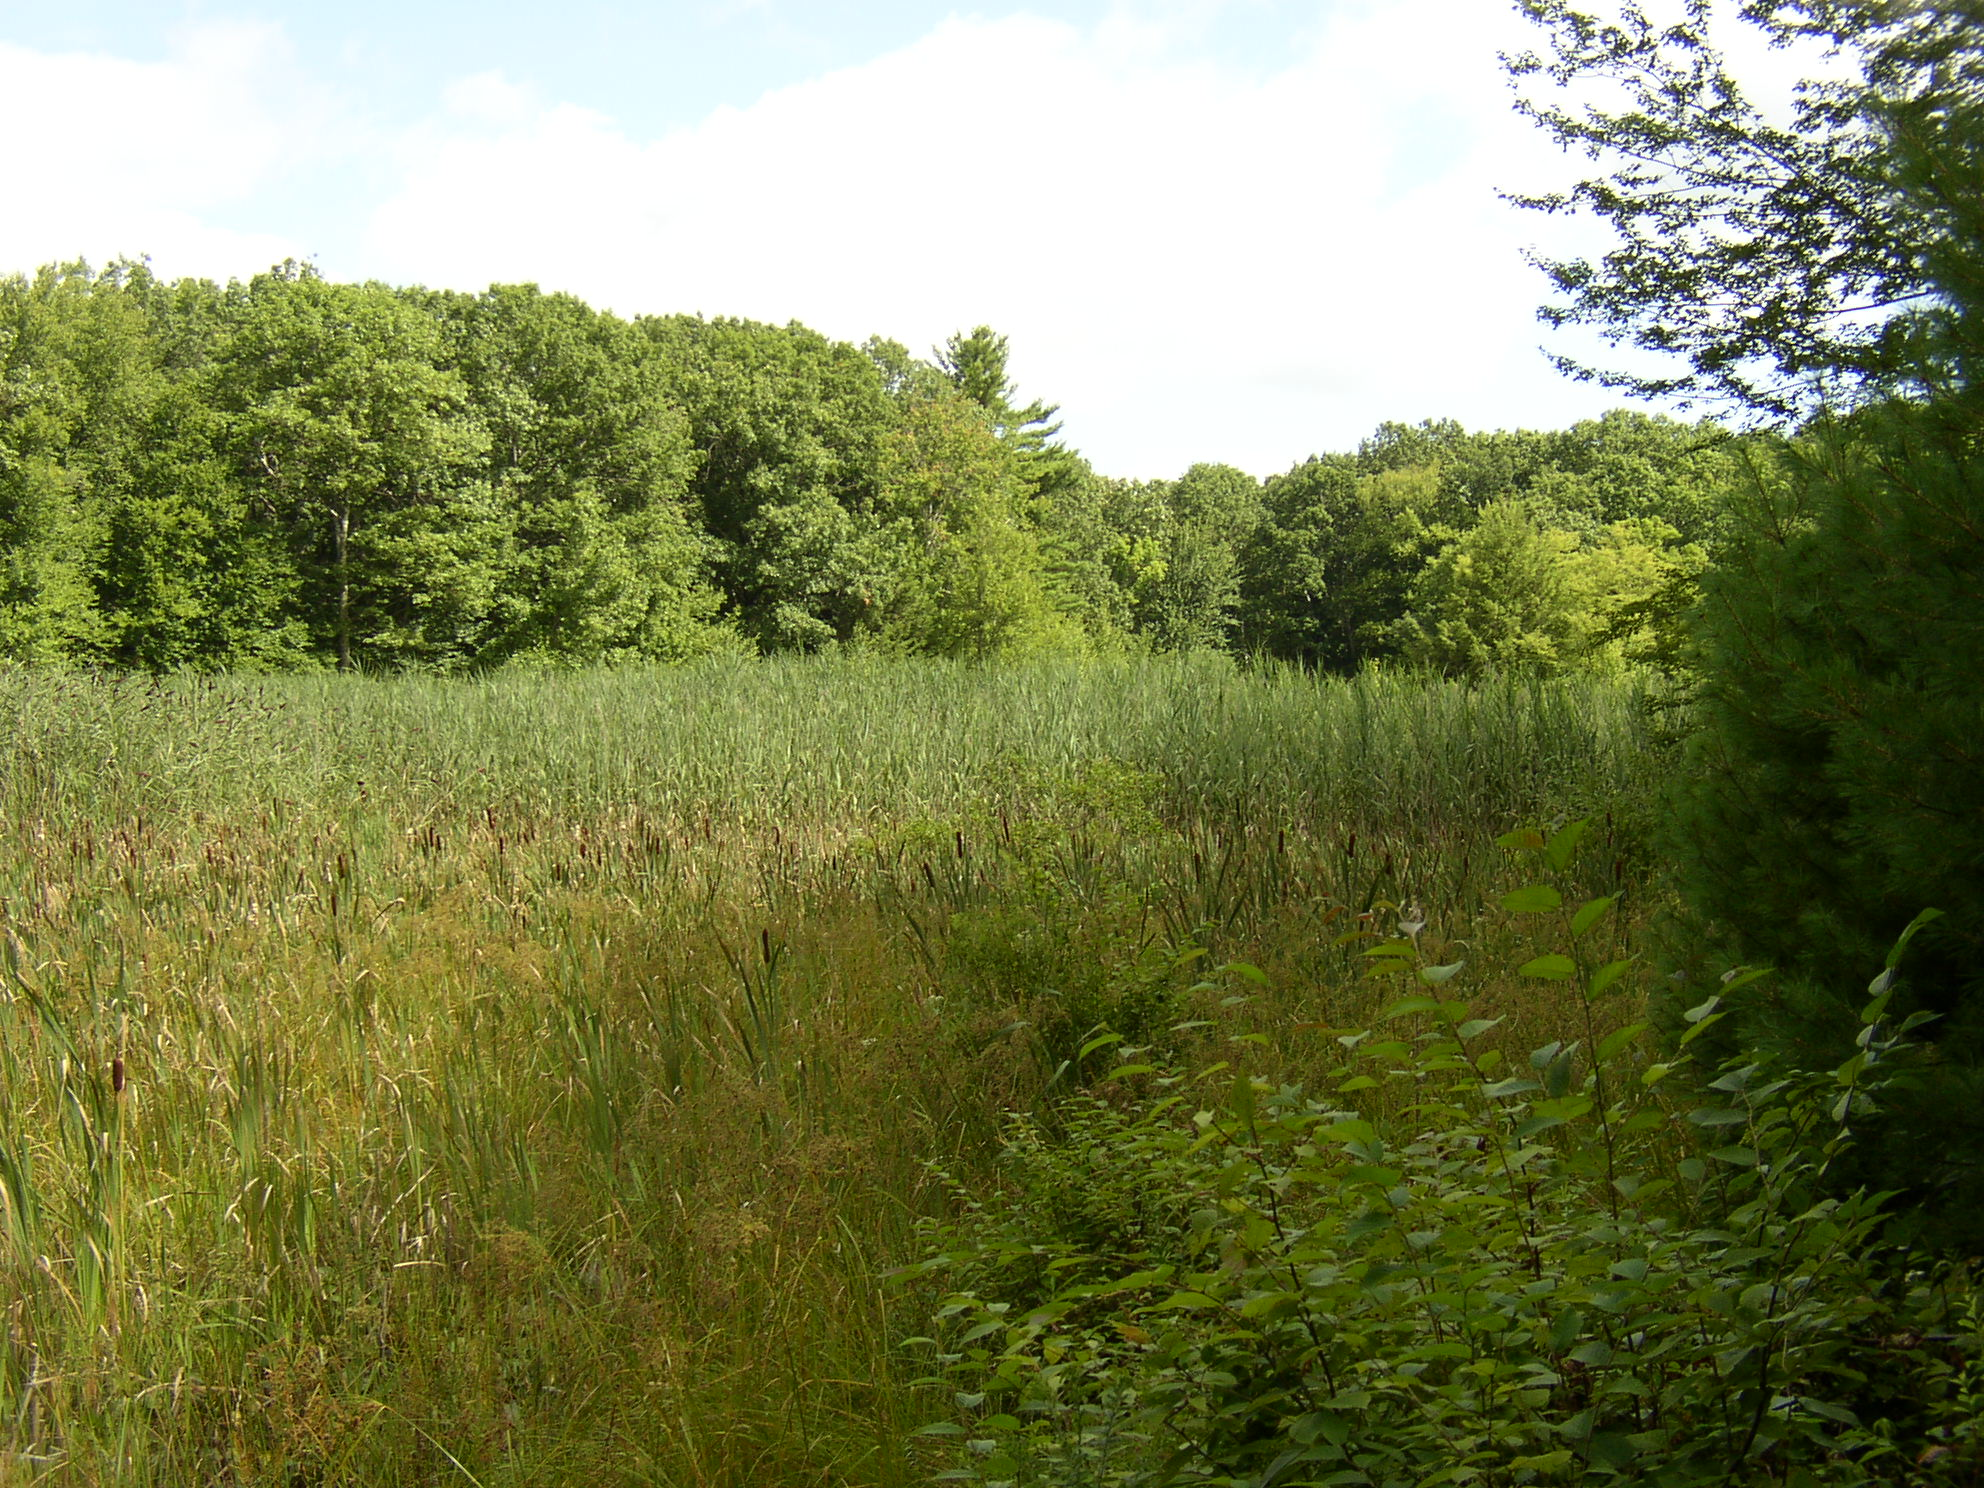 Last summer, the 2-acre marsh at Forever Forest continued to have a dense stand of reeds with no visible standing water amongst the vegetation.